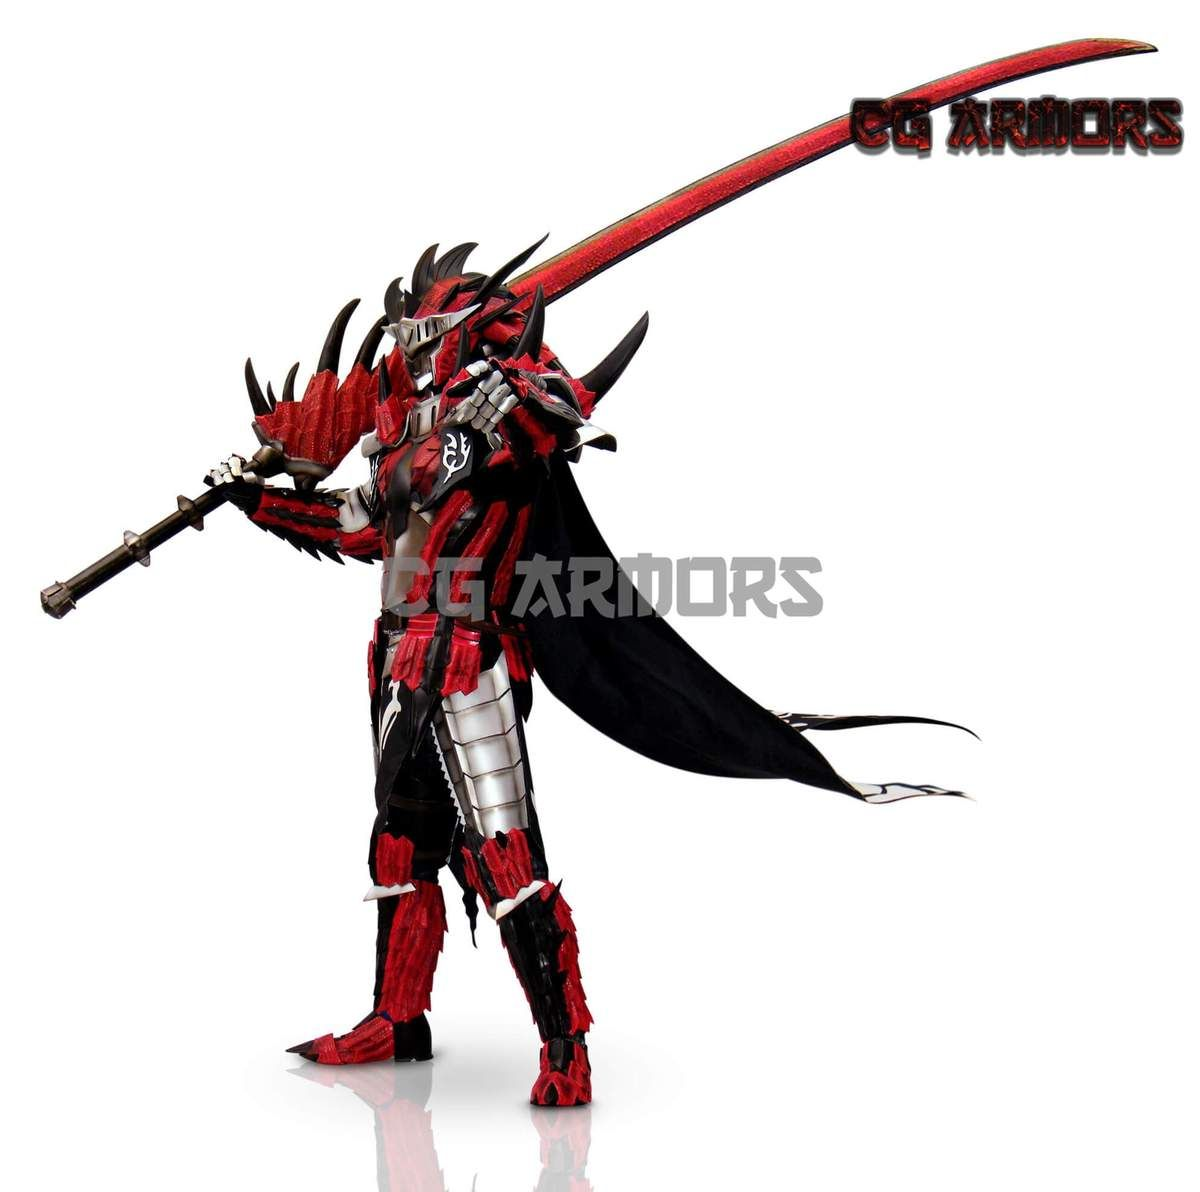 Monster Hunter Aka Liolaeus Rathalos Cosplay Armor Weapon In